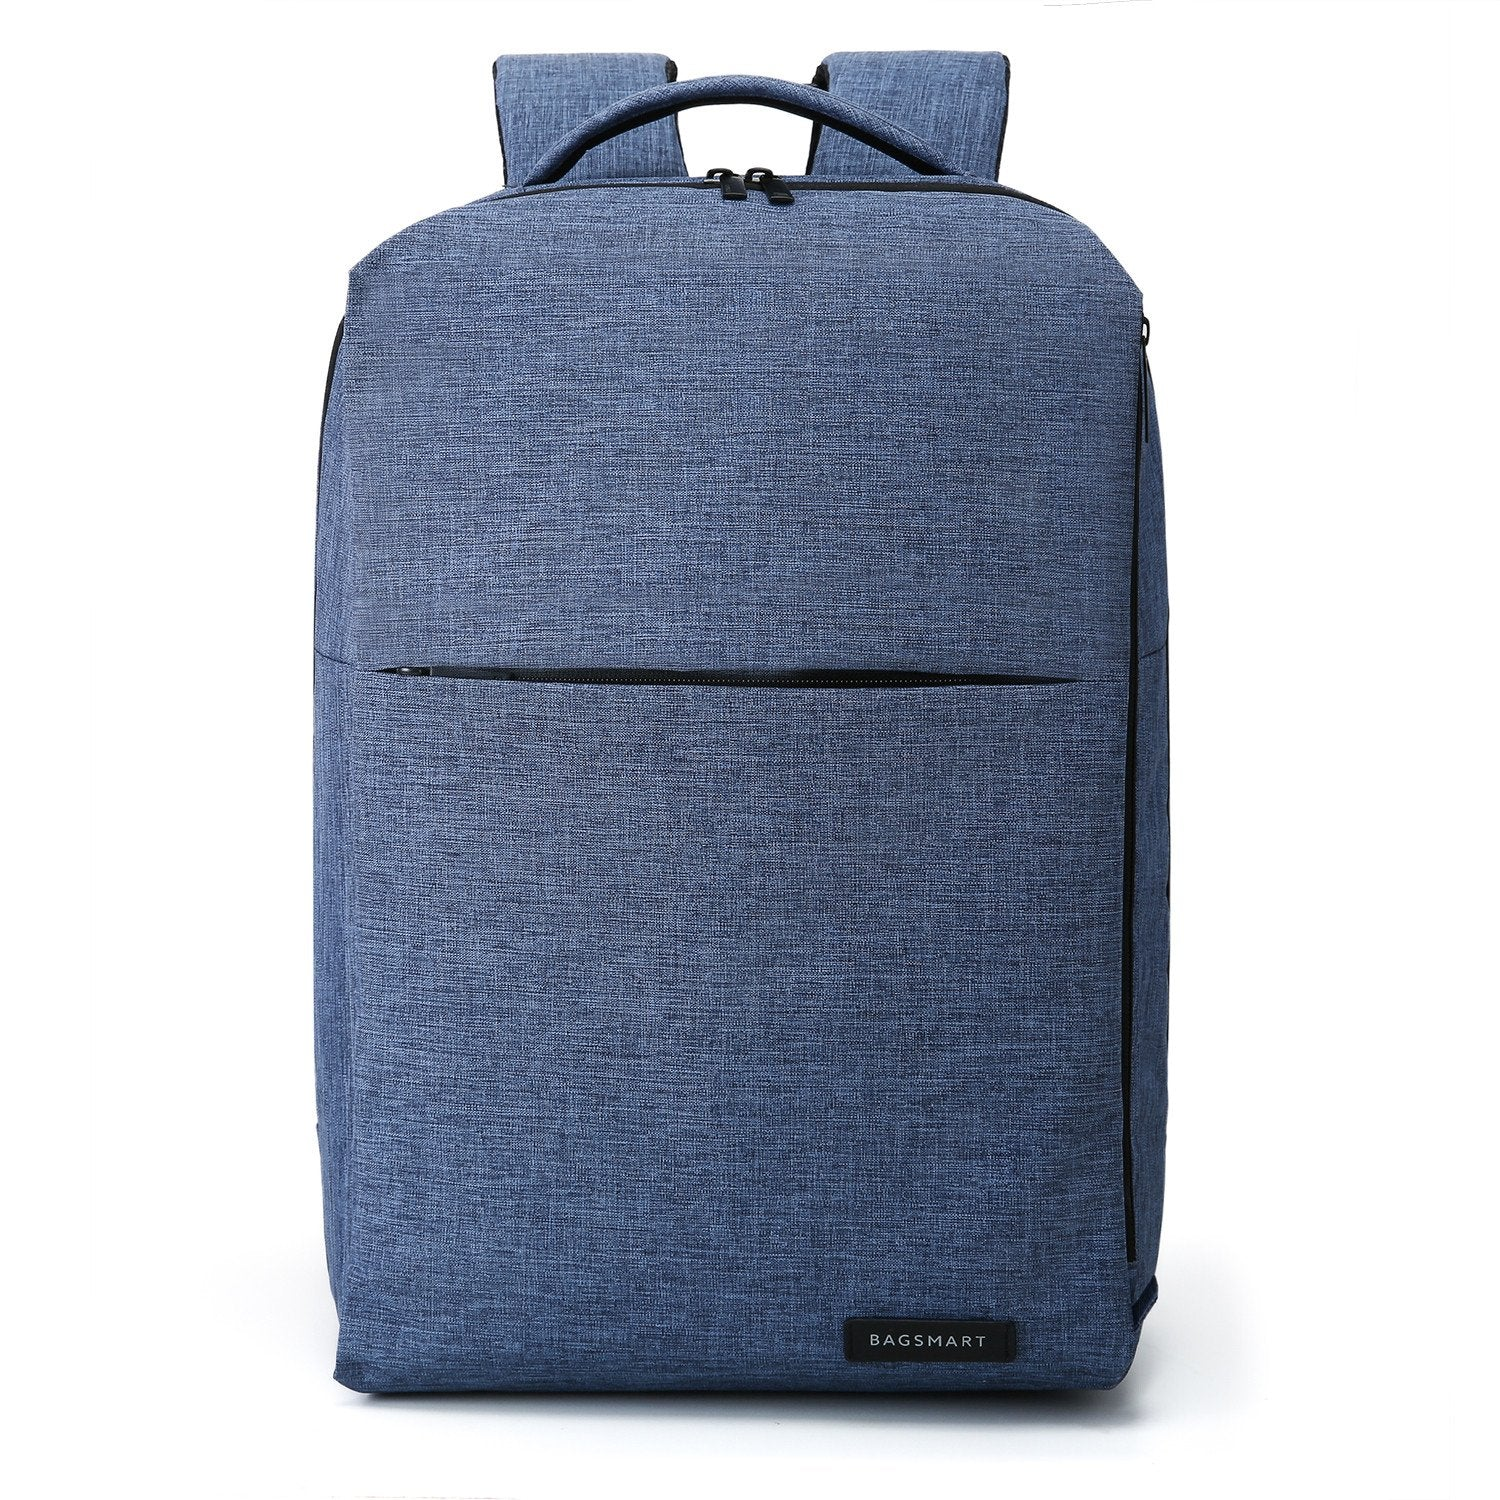 TCW Laptop Backpack with Headphone Port